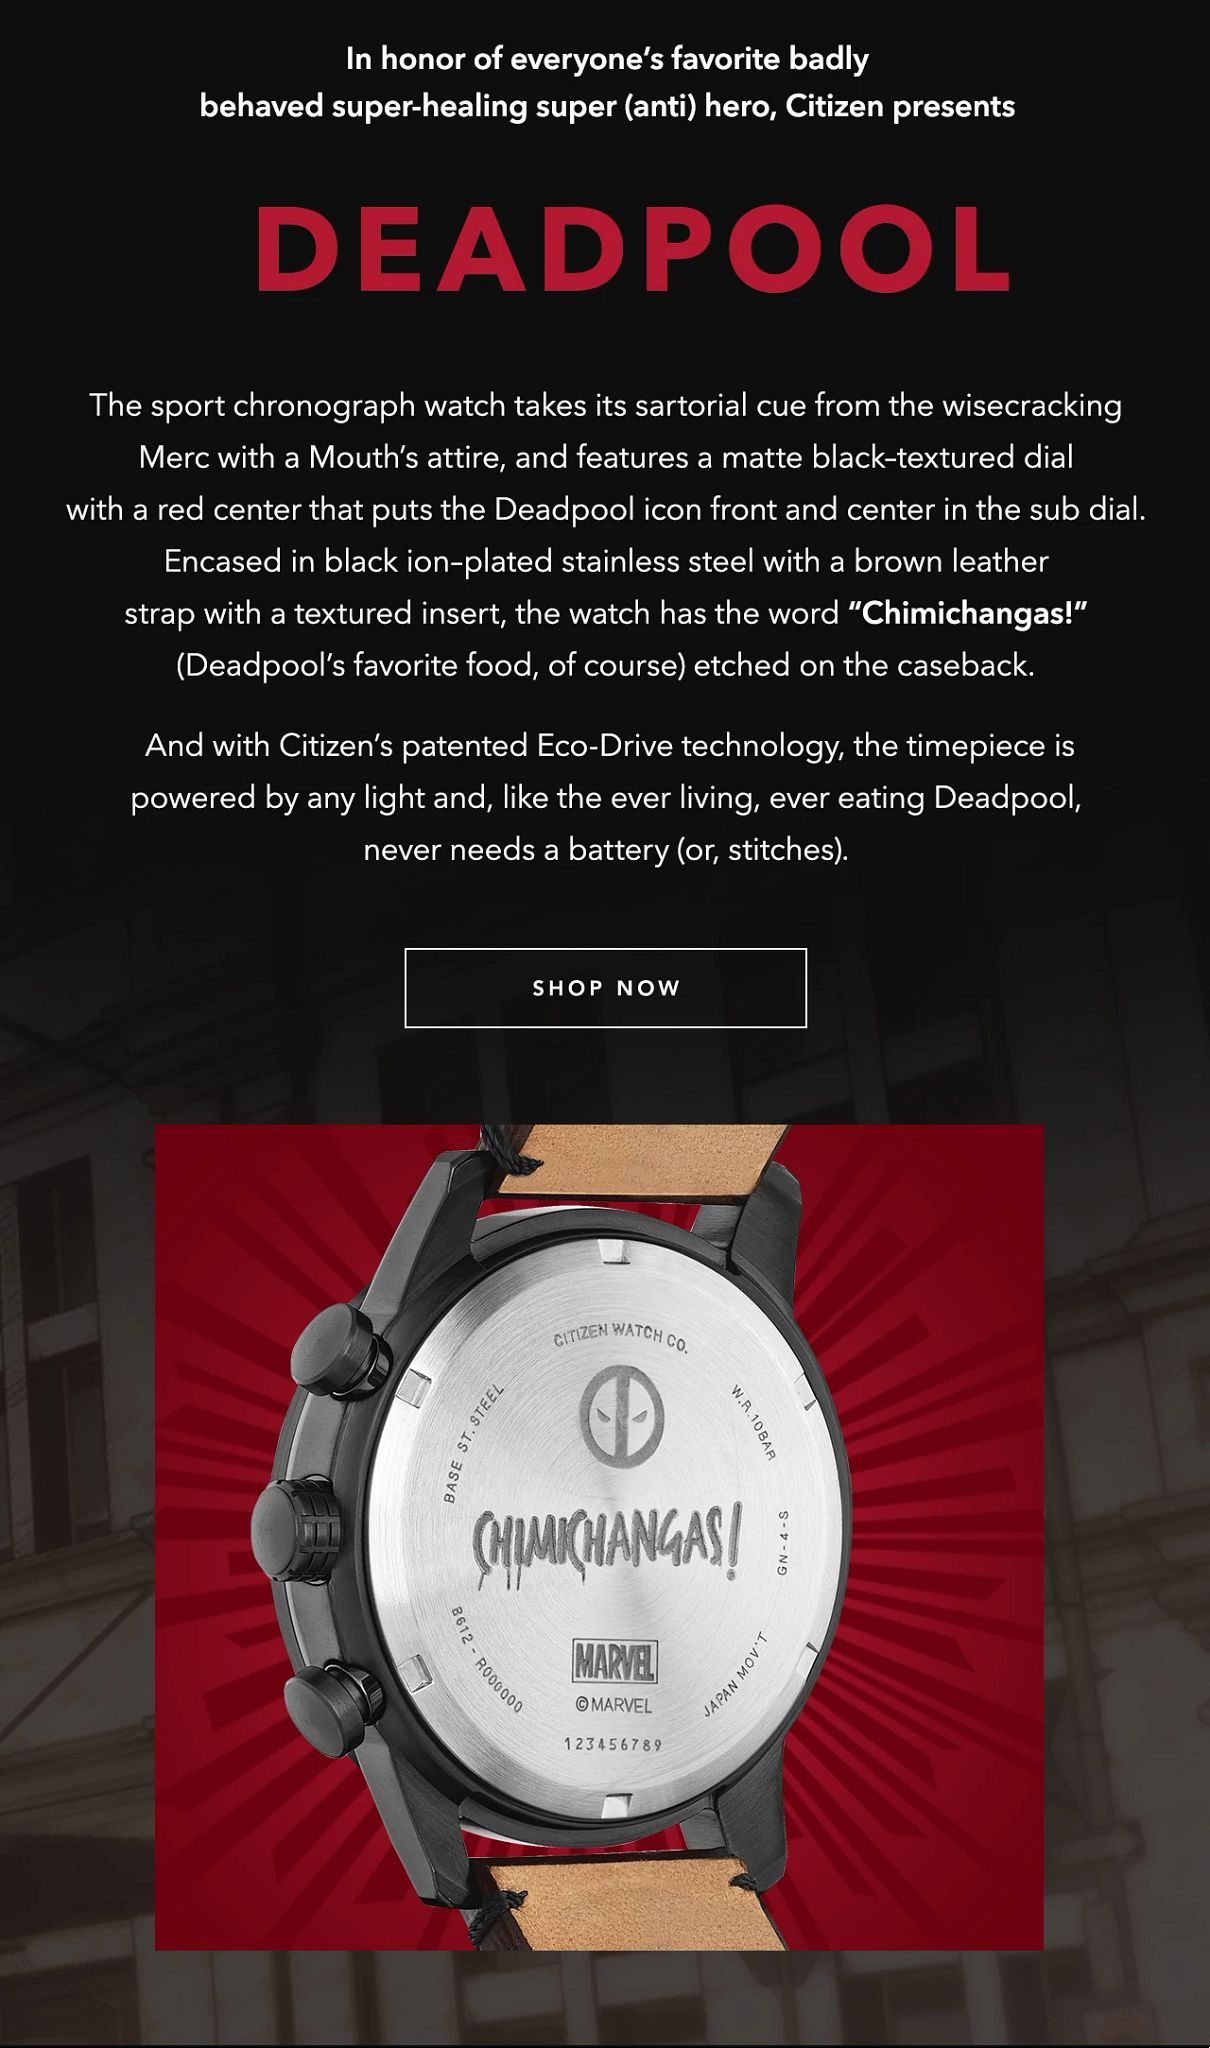 "In honor of everyone's favorite badly behaved super-healing super (anti) hero, Citizen presents Deadpool. The sport chronograph watch takes its sartorial cue from the wisecracking Merc with a Mouth's attire, and features a matte black–textured dial with a red center that puts the Deadpool icon front and center in the sub dial. Encased in black ion–plated stainless steel with a brown leather strap with a textured insert, the watch has the word ""Chimichangas!"" (Deadpool's favorite food, of course) etched on the caseback. And with Citizen's patented Eco-Drive technology, the timepiece is powered by any light and, like the ever living, ever eating Deadpool, never needs a battery (or, stitches)."